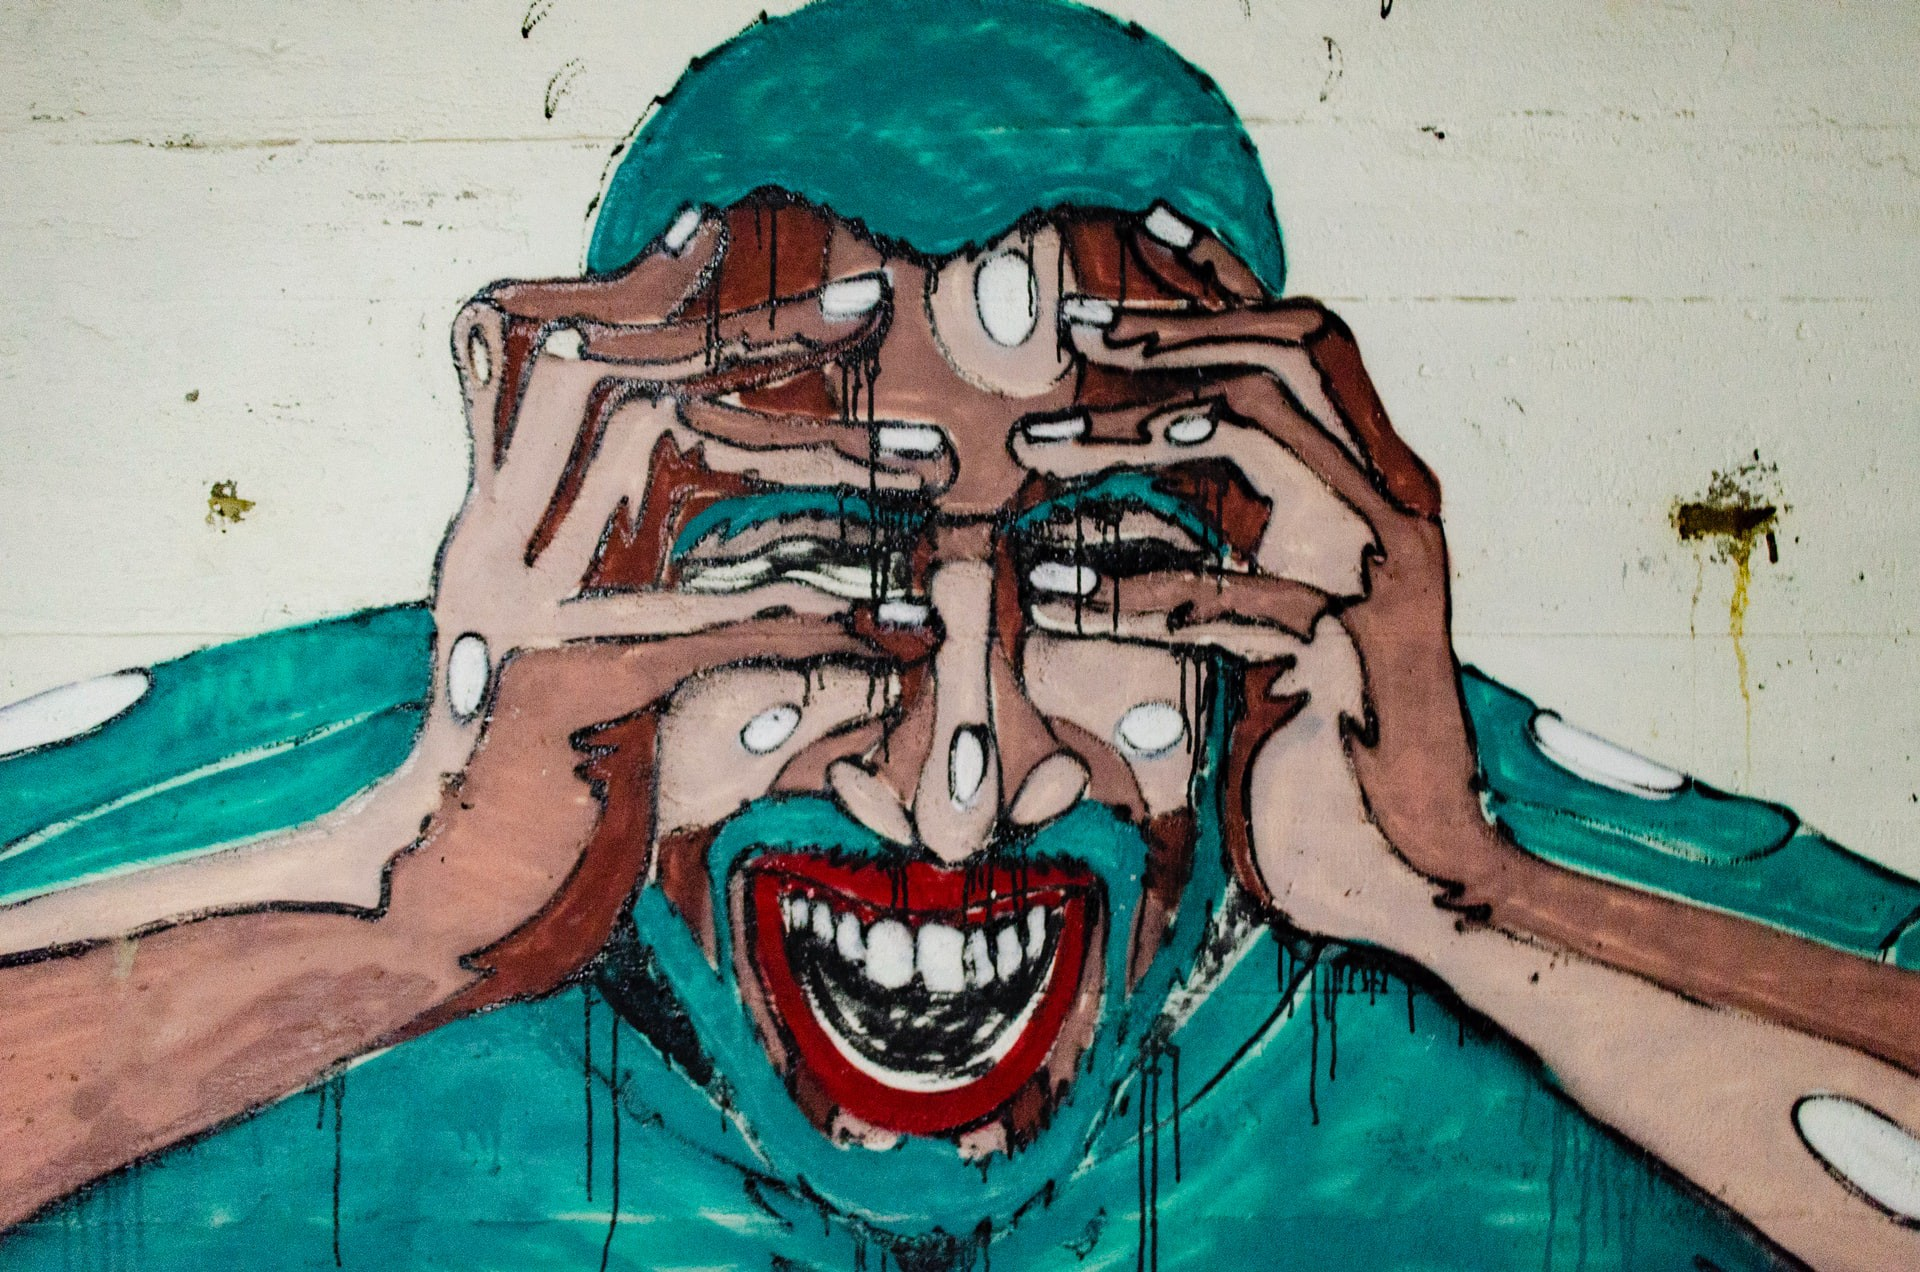 Photograph of graffiti of a man holding his head and scrfeaming in a military bunker in Finland